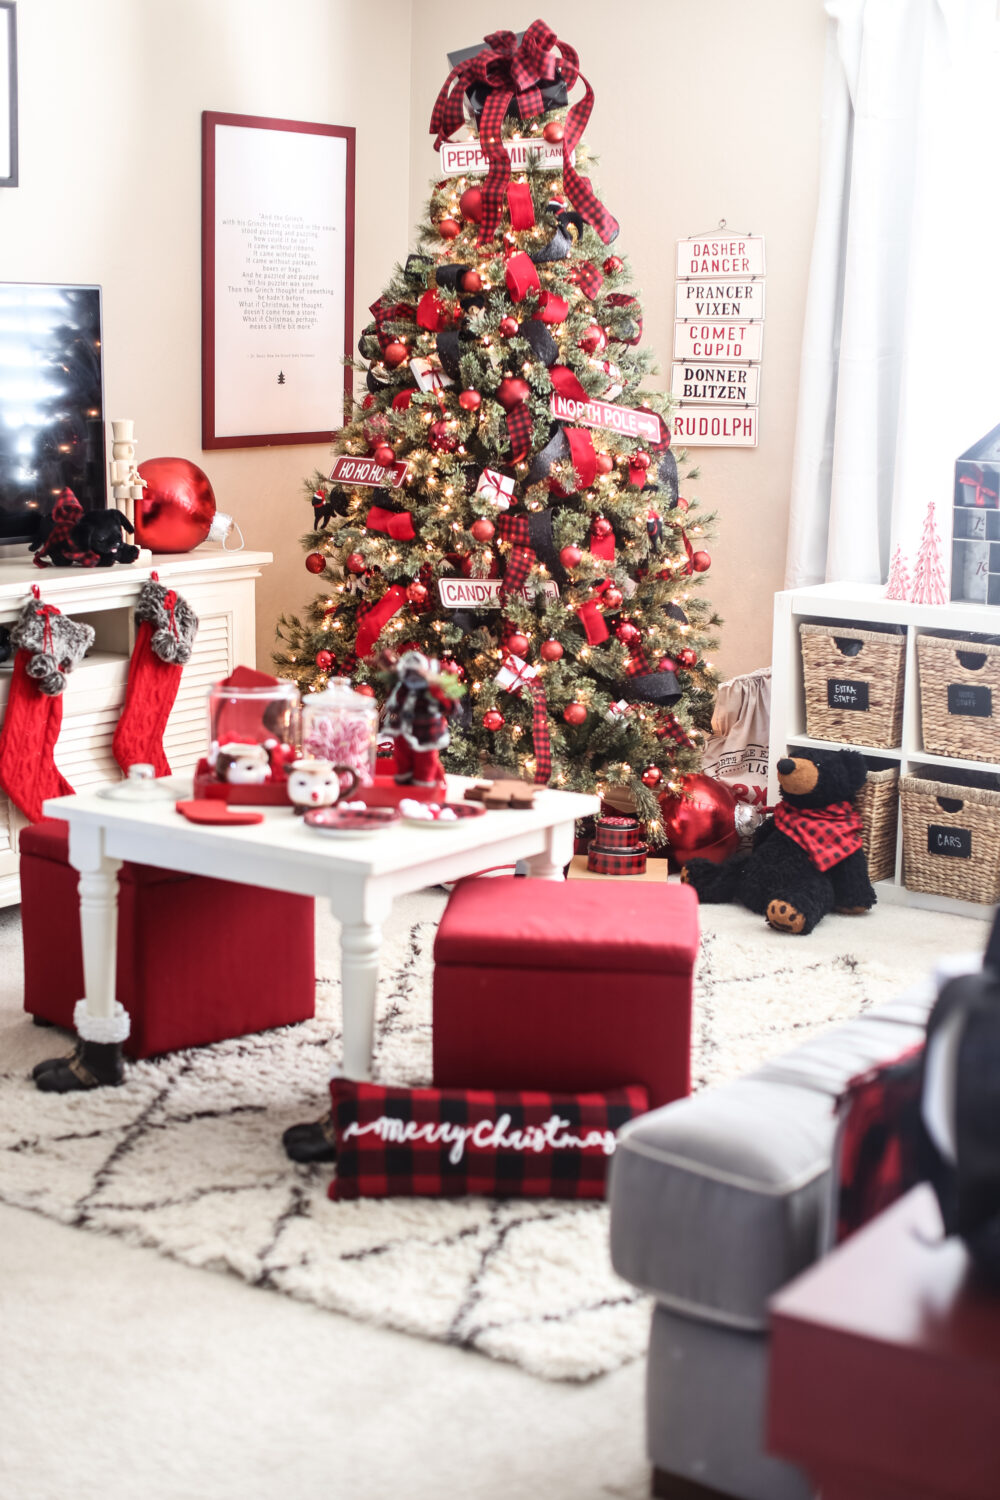 Kids Christmas tree Ideas in red and black. This tree looks like its perfect for a playroom.